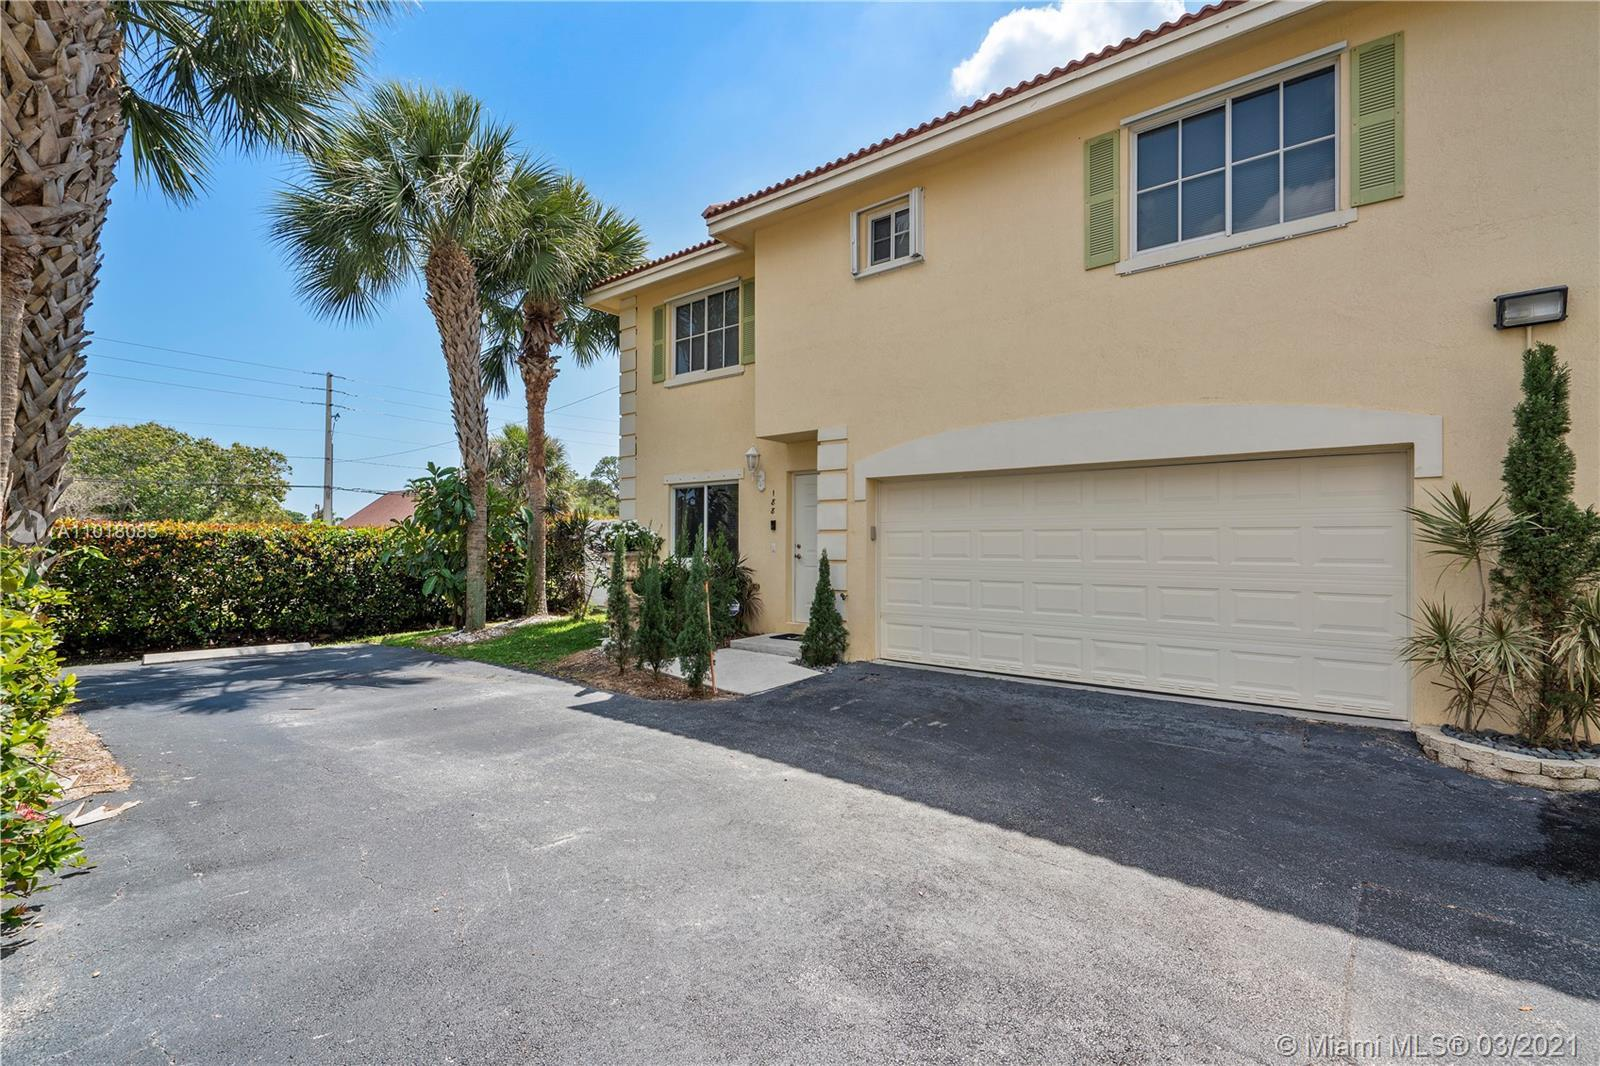 Firm at asking price. NOT SUBJECT to appraisal. East Deerfield Beach 3/2.5 like new townhome.  This